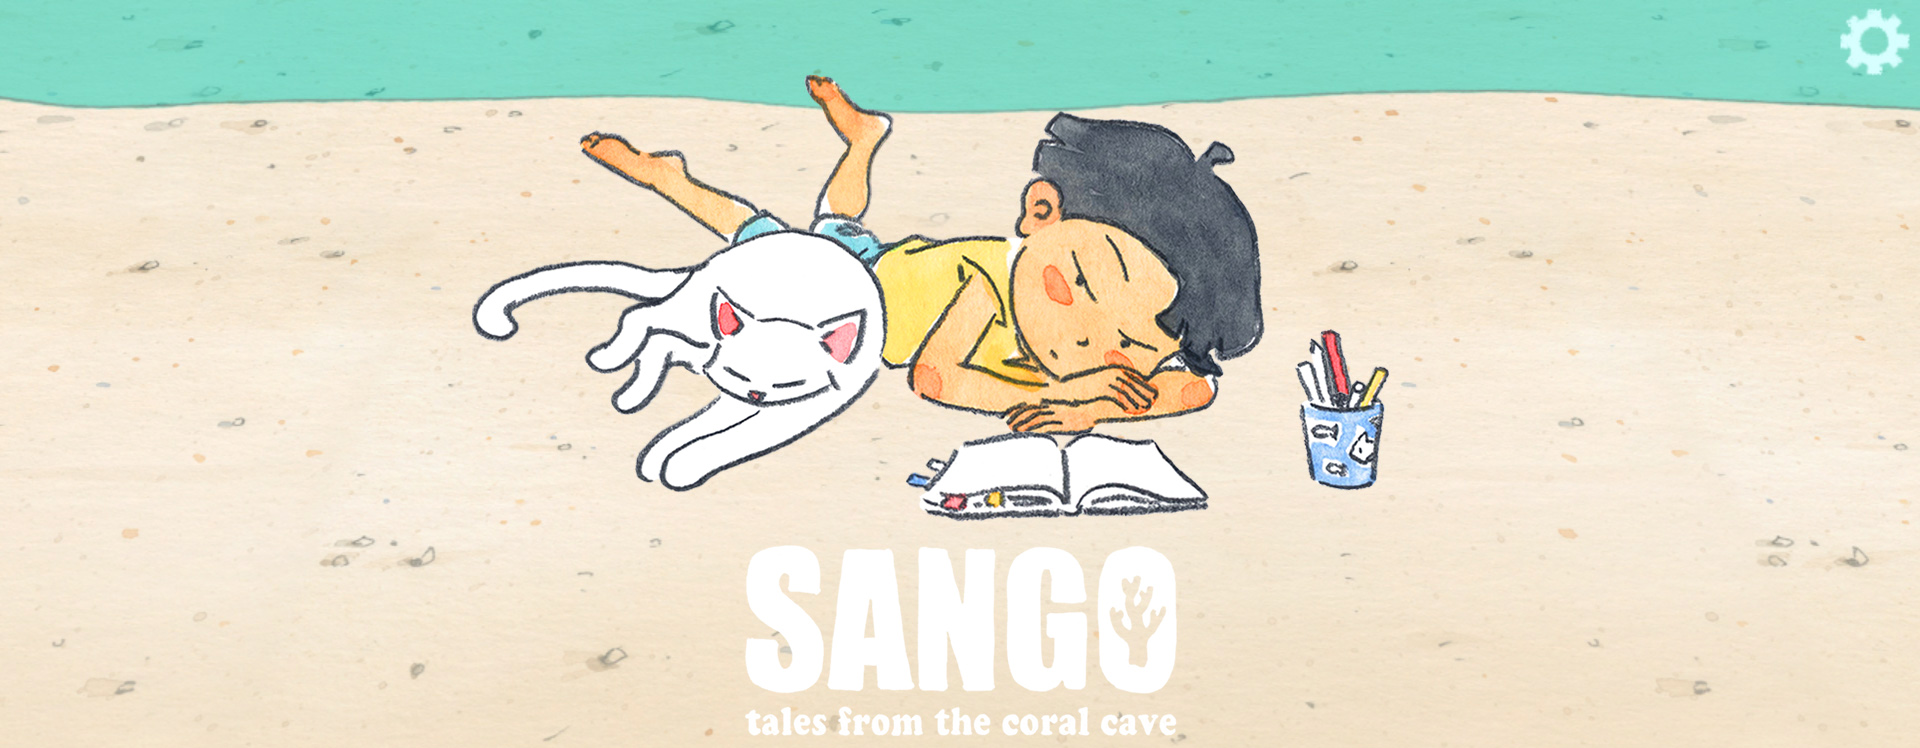 Sango - Tales from the Coral Cave